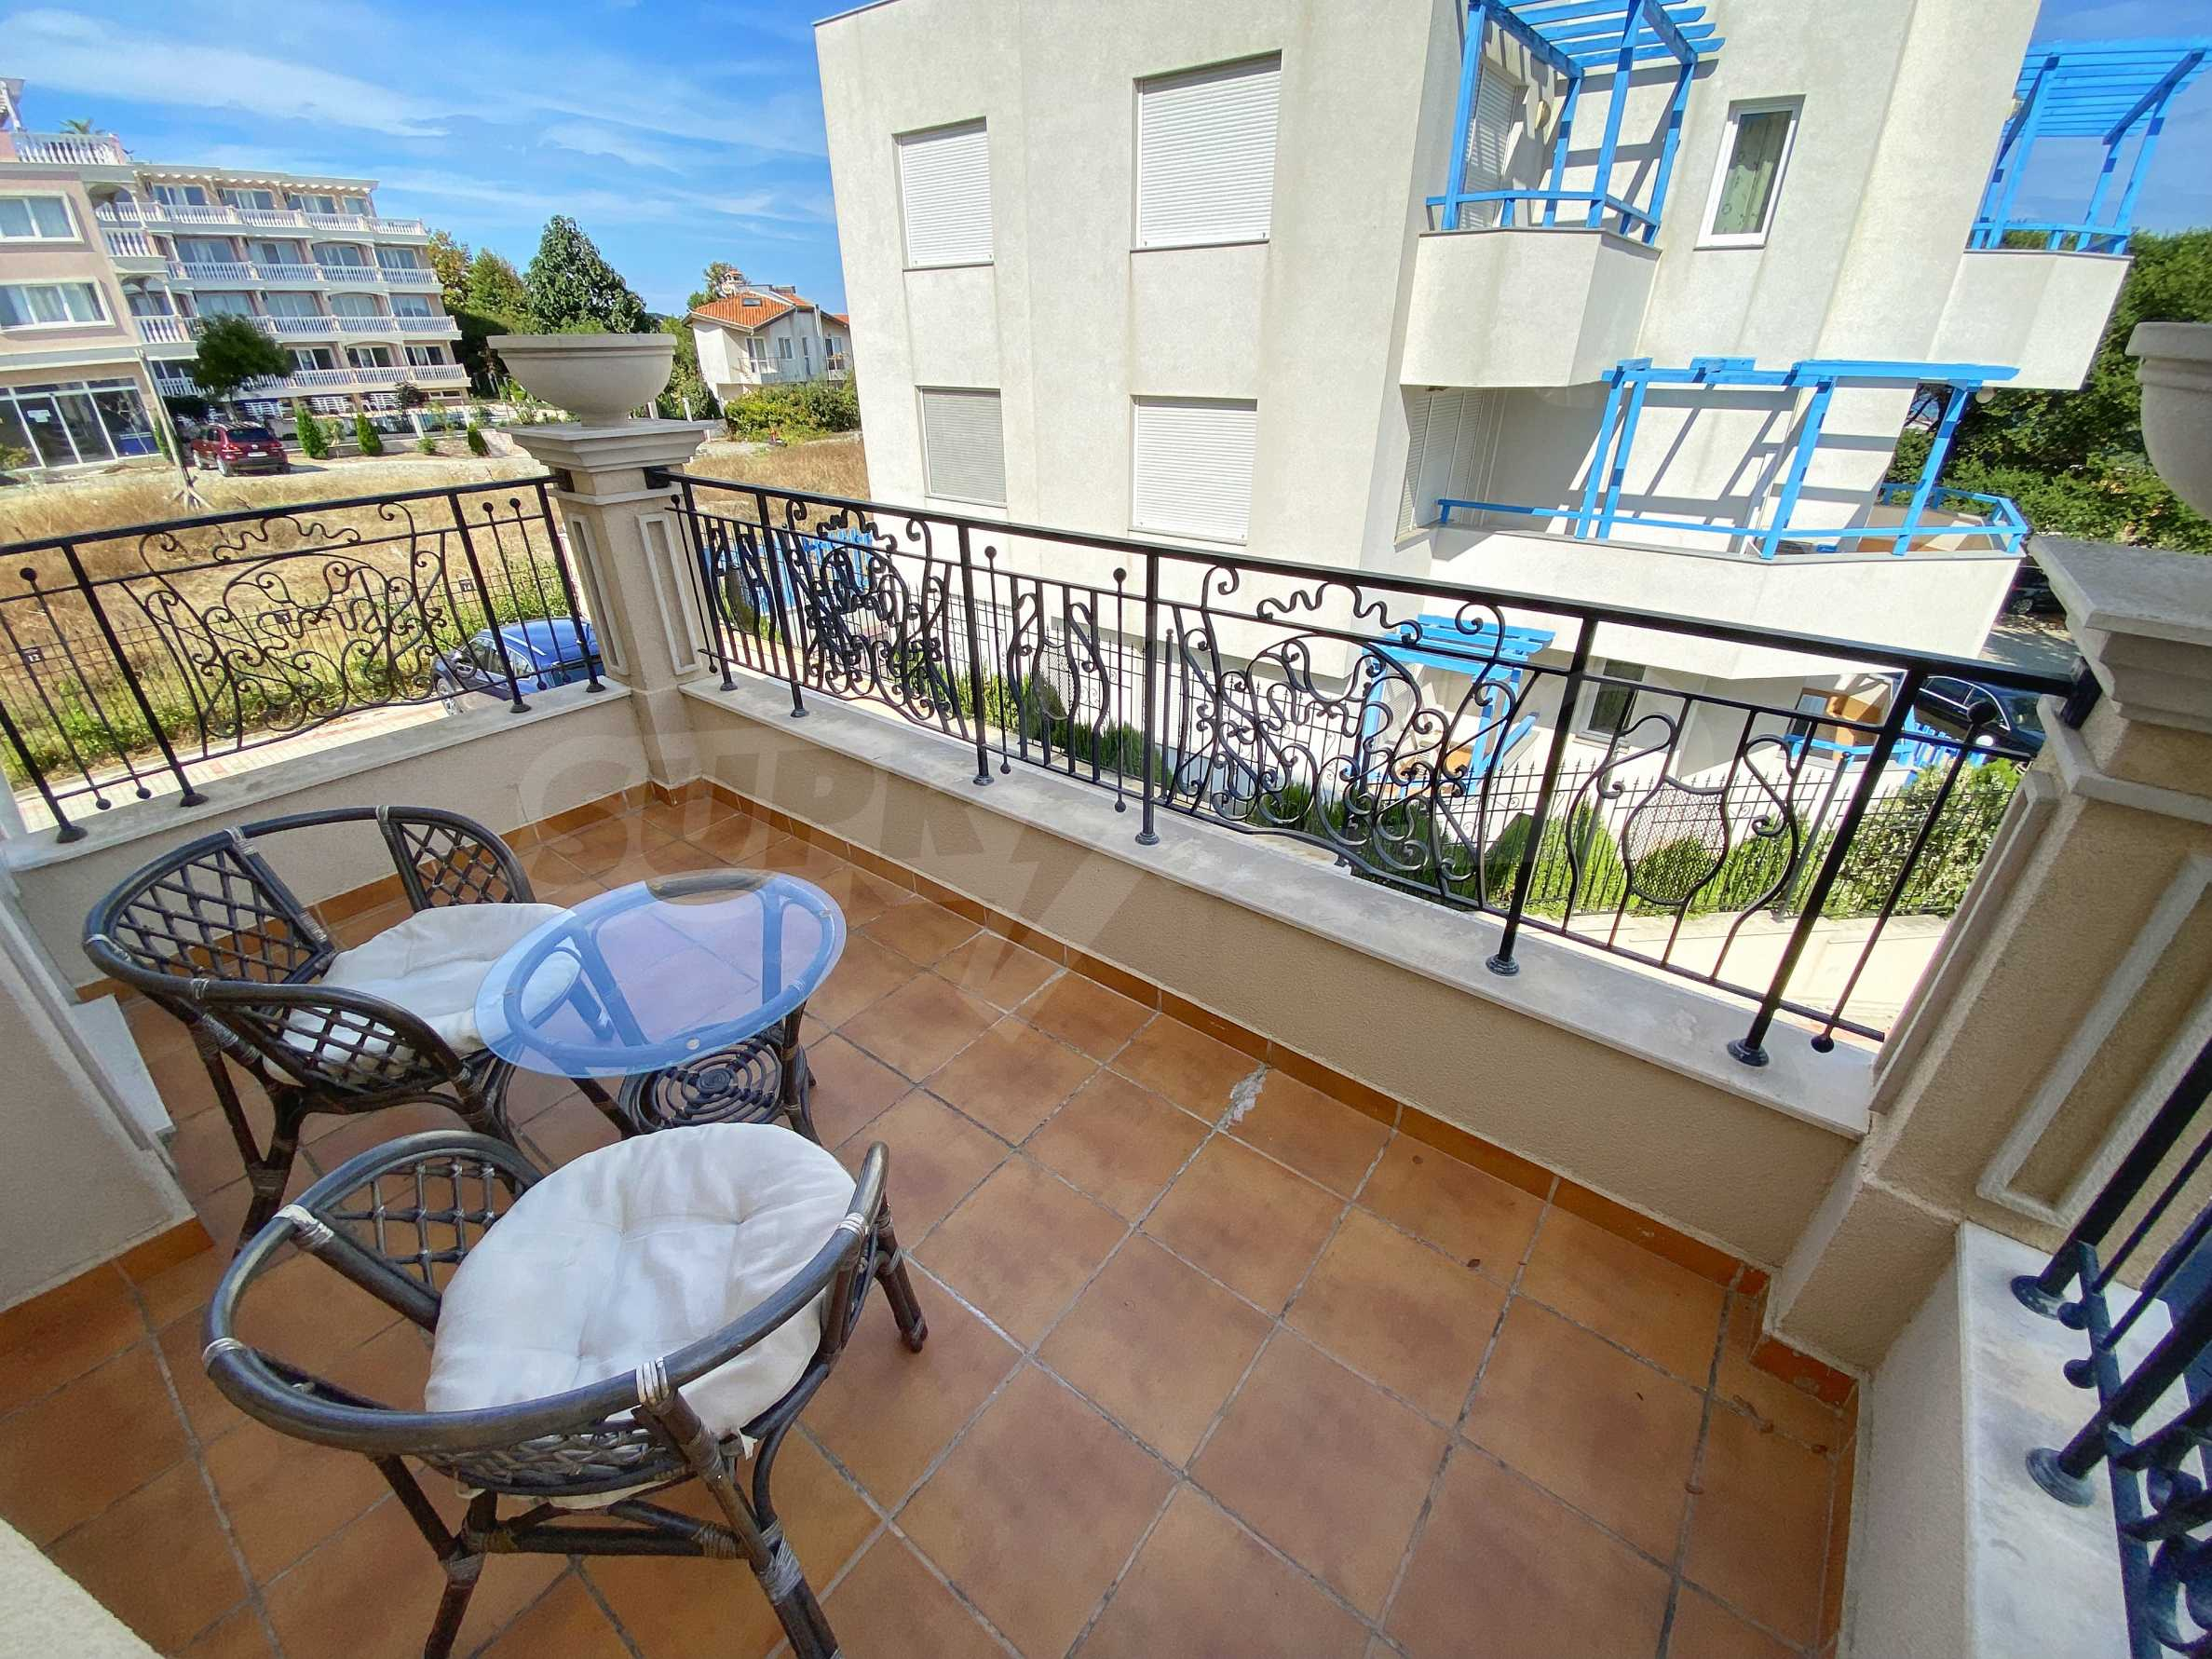 Luxurious apartment with sea views in Belle Époque remarkable residence by Central Beach 24